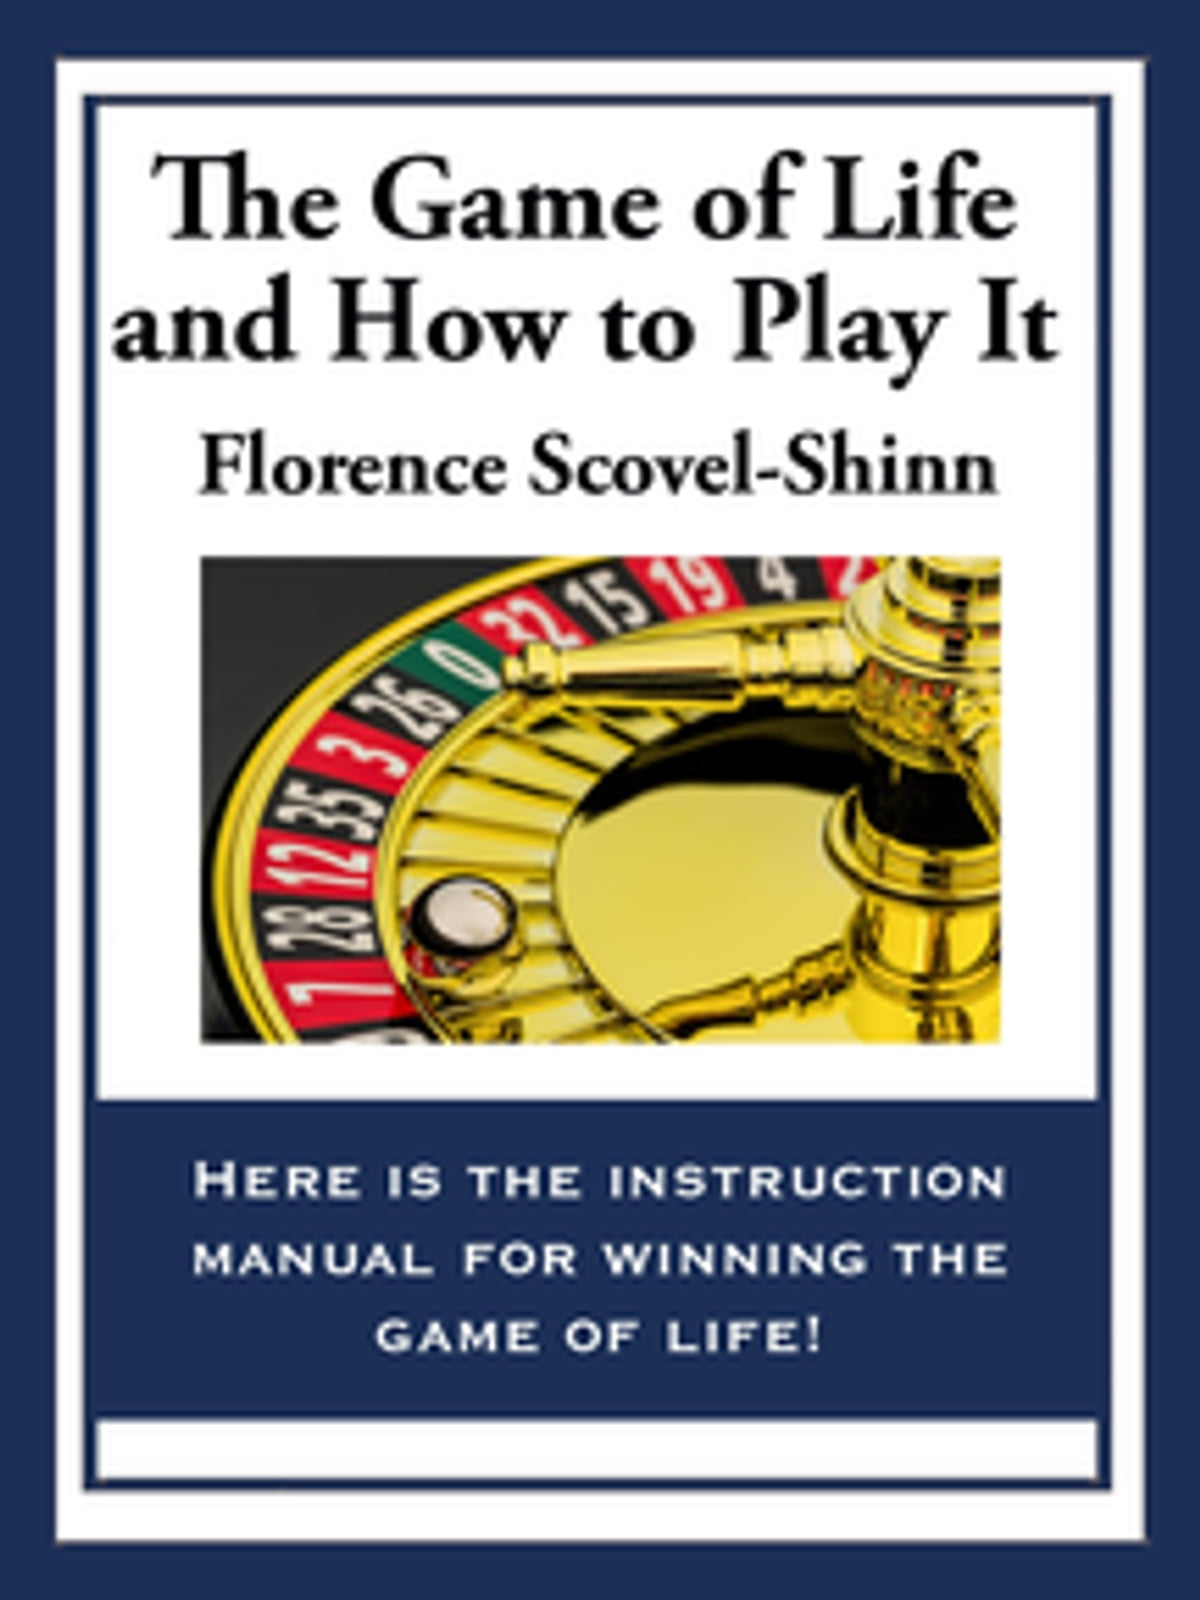 The game of life and how to play it ebook by florence scovel shinn the game of life and how to play it ebook by florence scovel shinn 9781627553926 rakuten kobo fandeluxe Choice Image